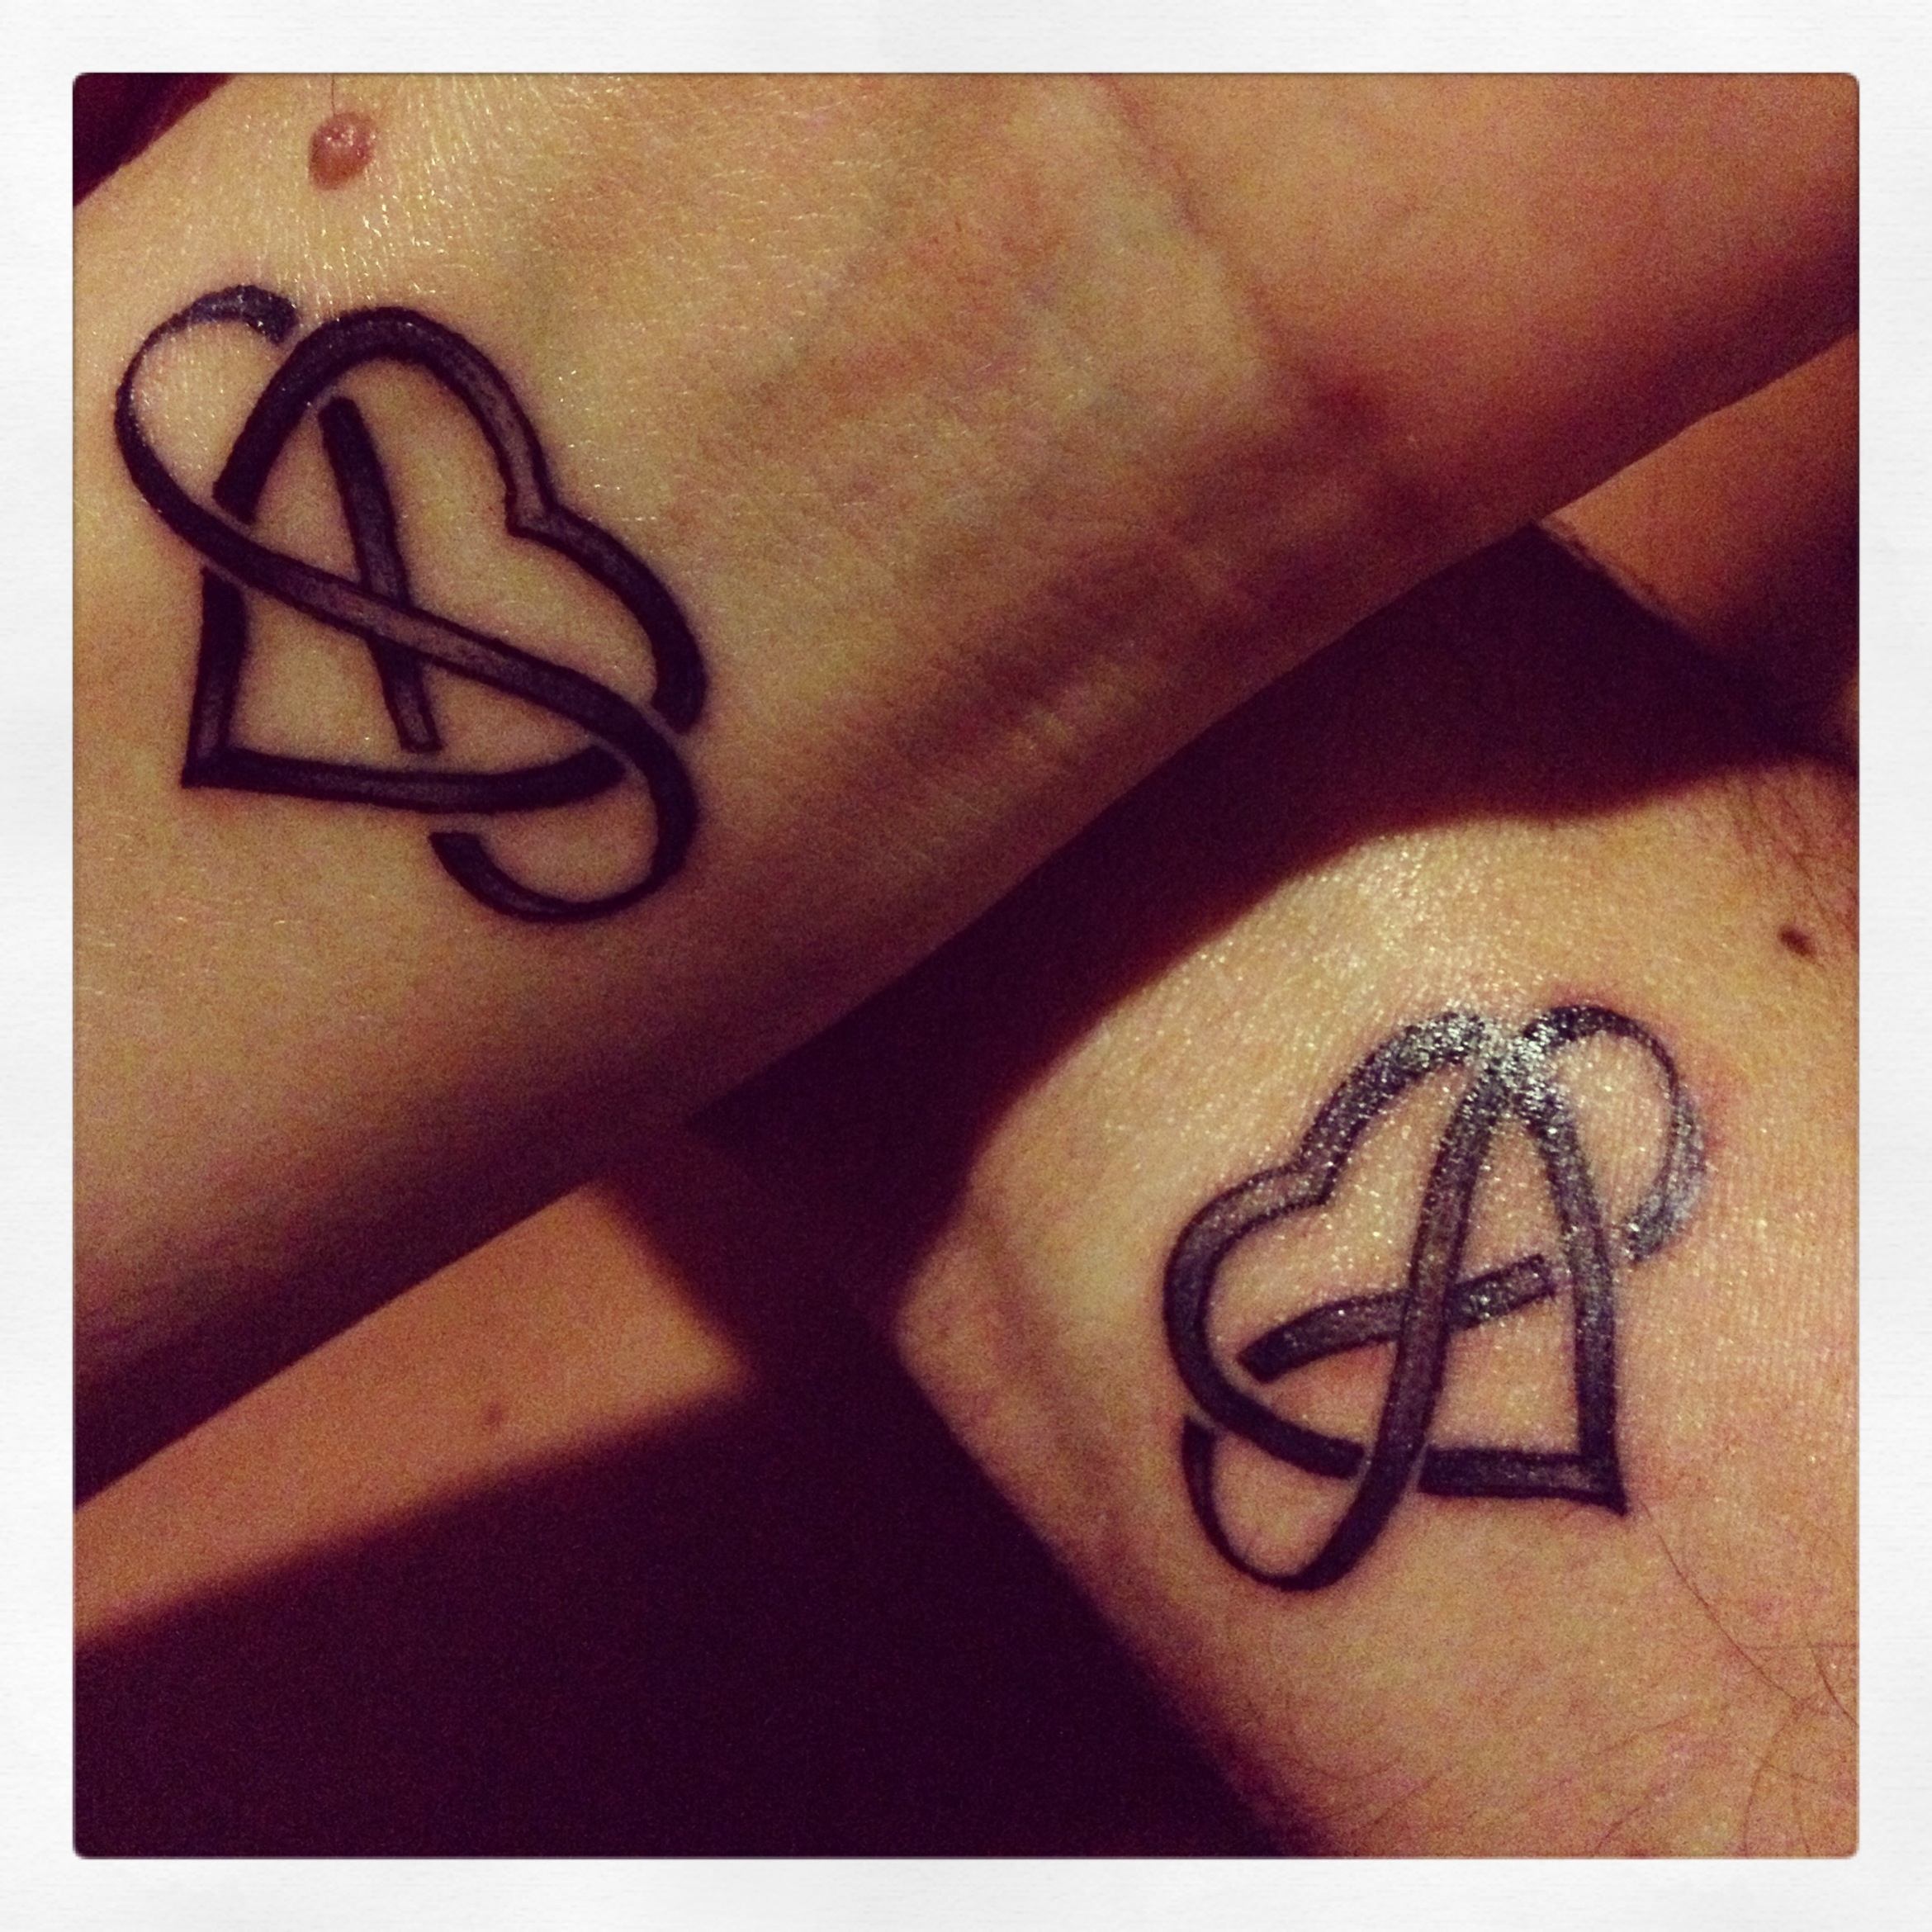 Infinity Love Tattoos Pictures infinity tattoos designs, ideas and meaning | tattoos for you